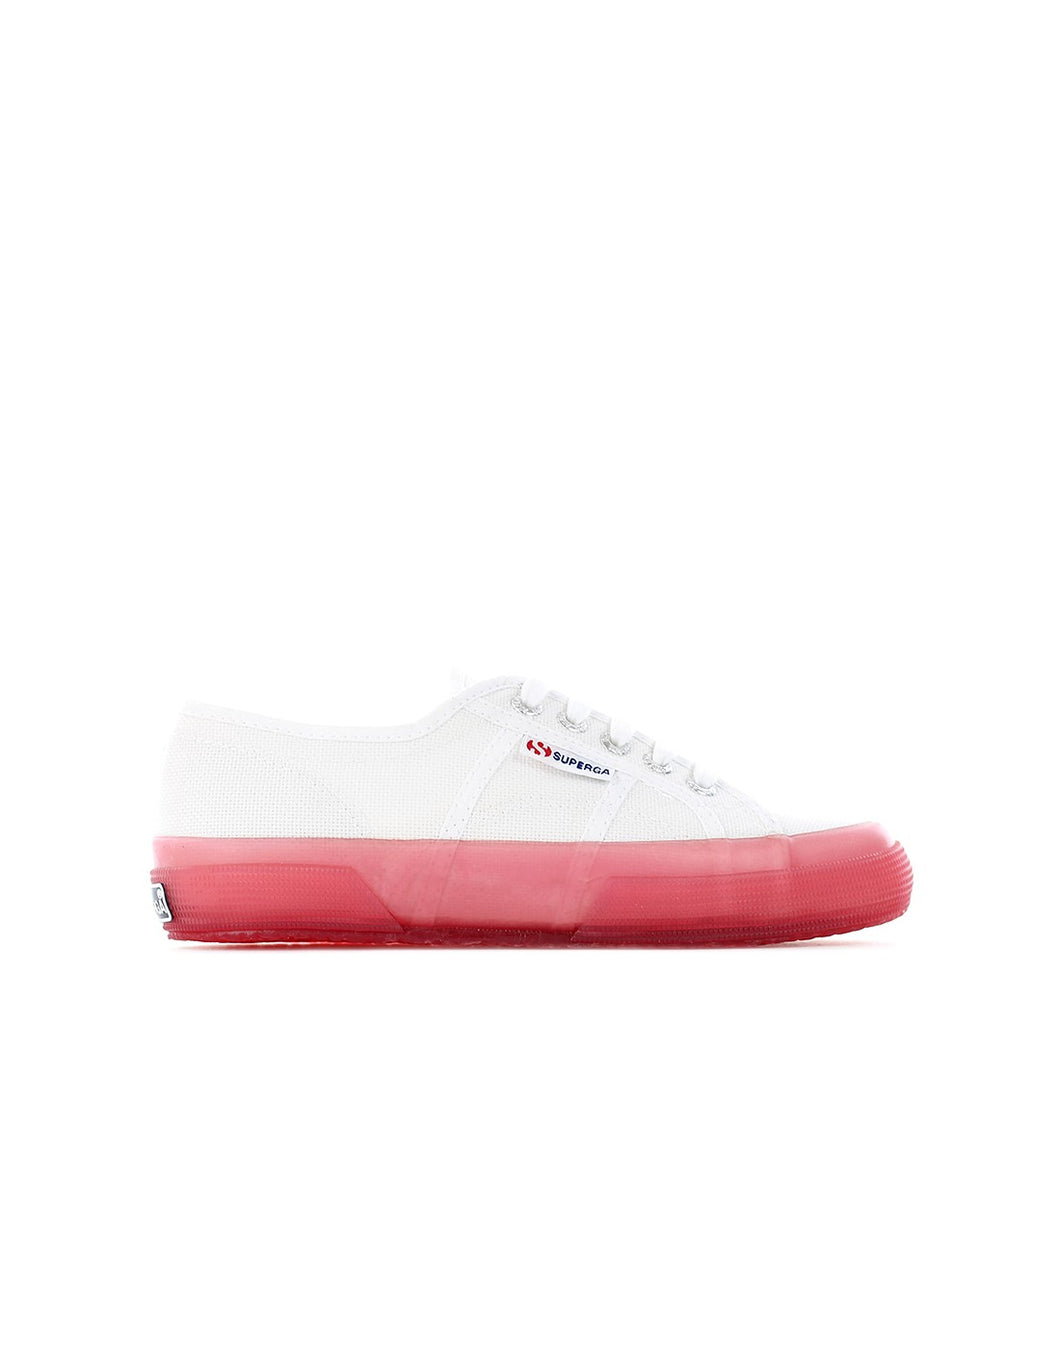 Superga Gelly Gum suola rosa